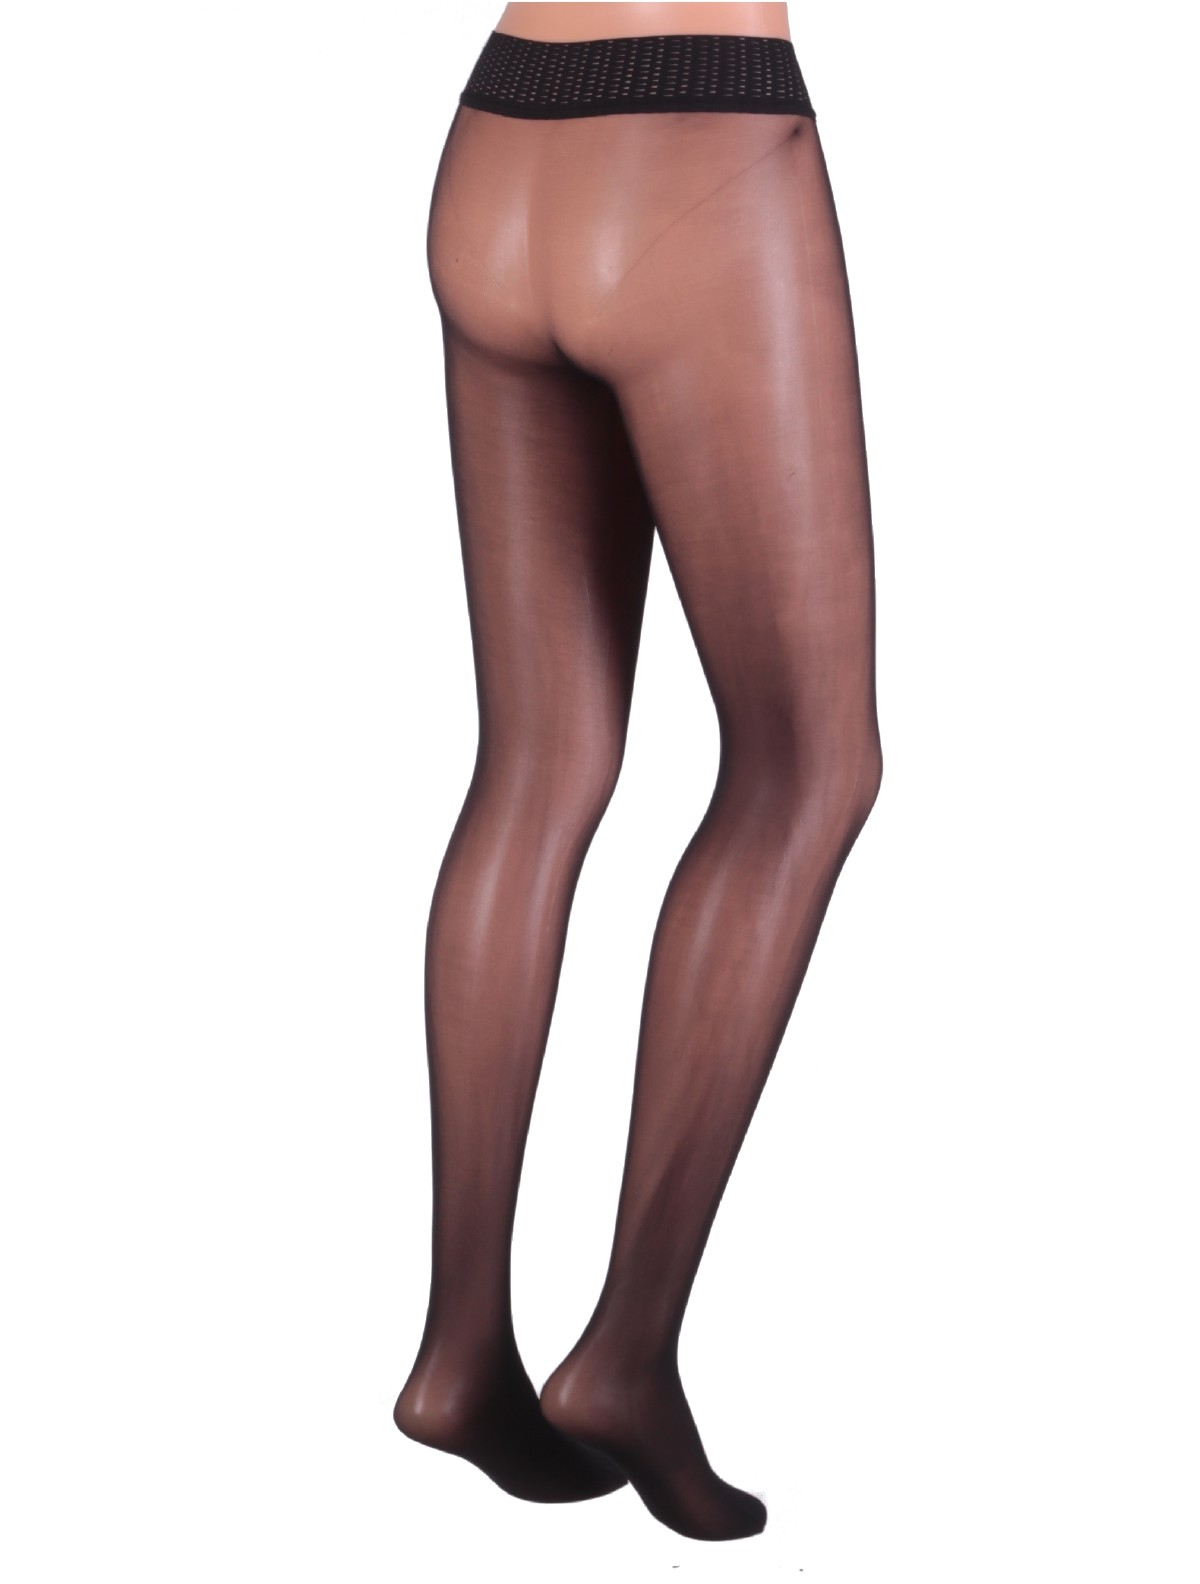 Your Low rise opaque pantyhose